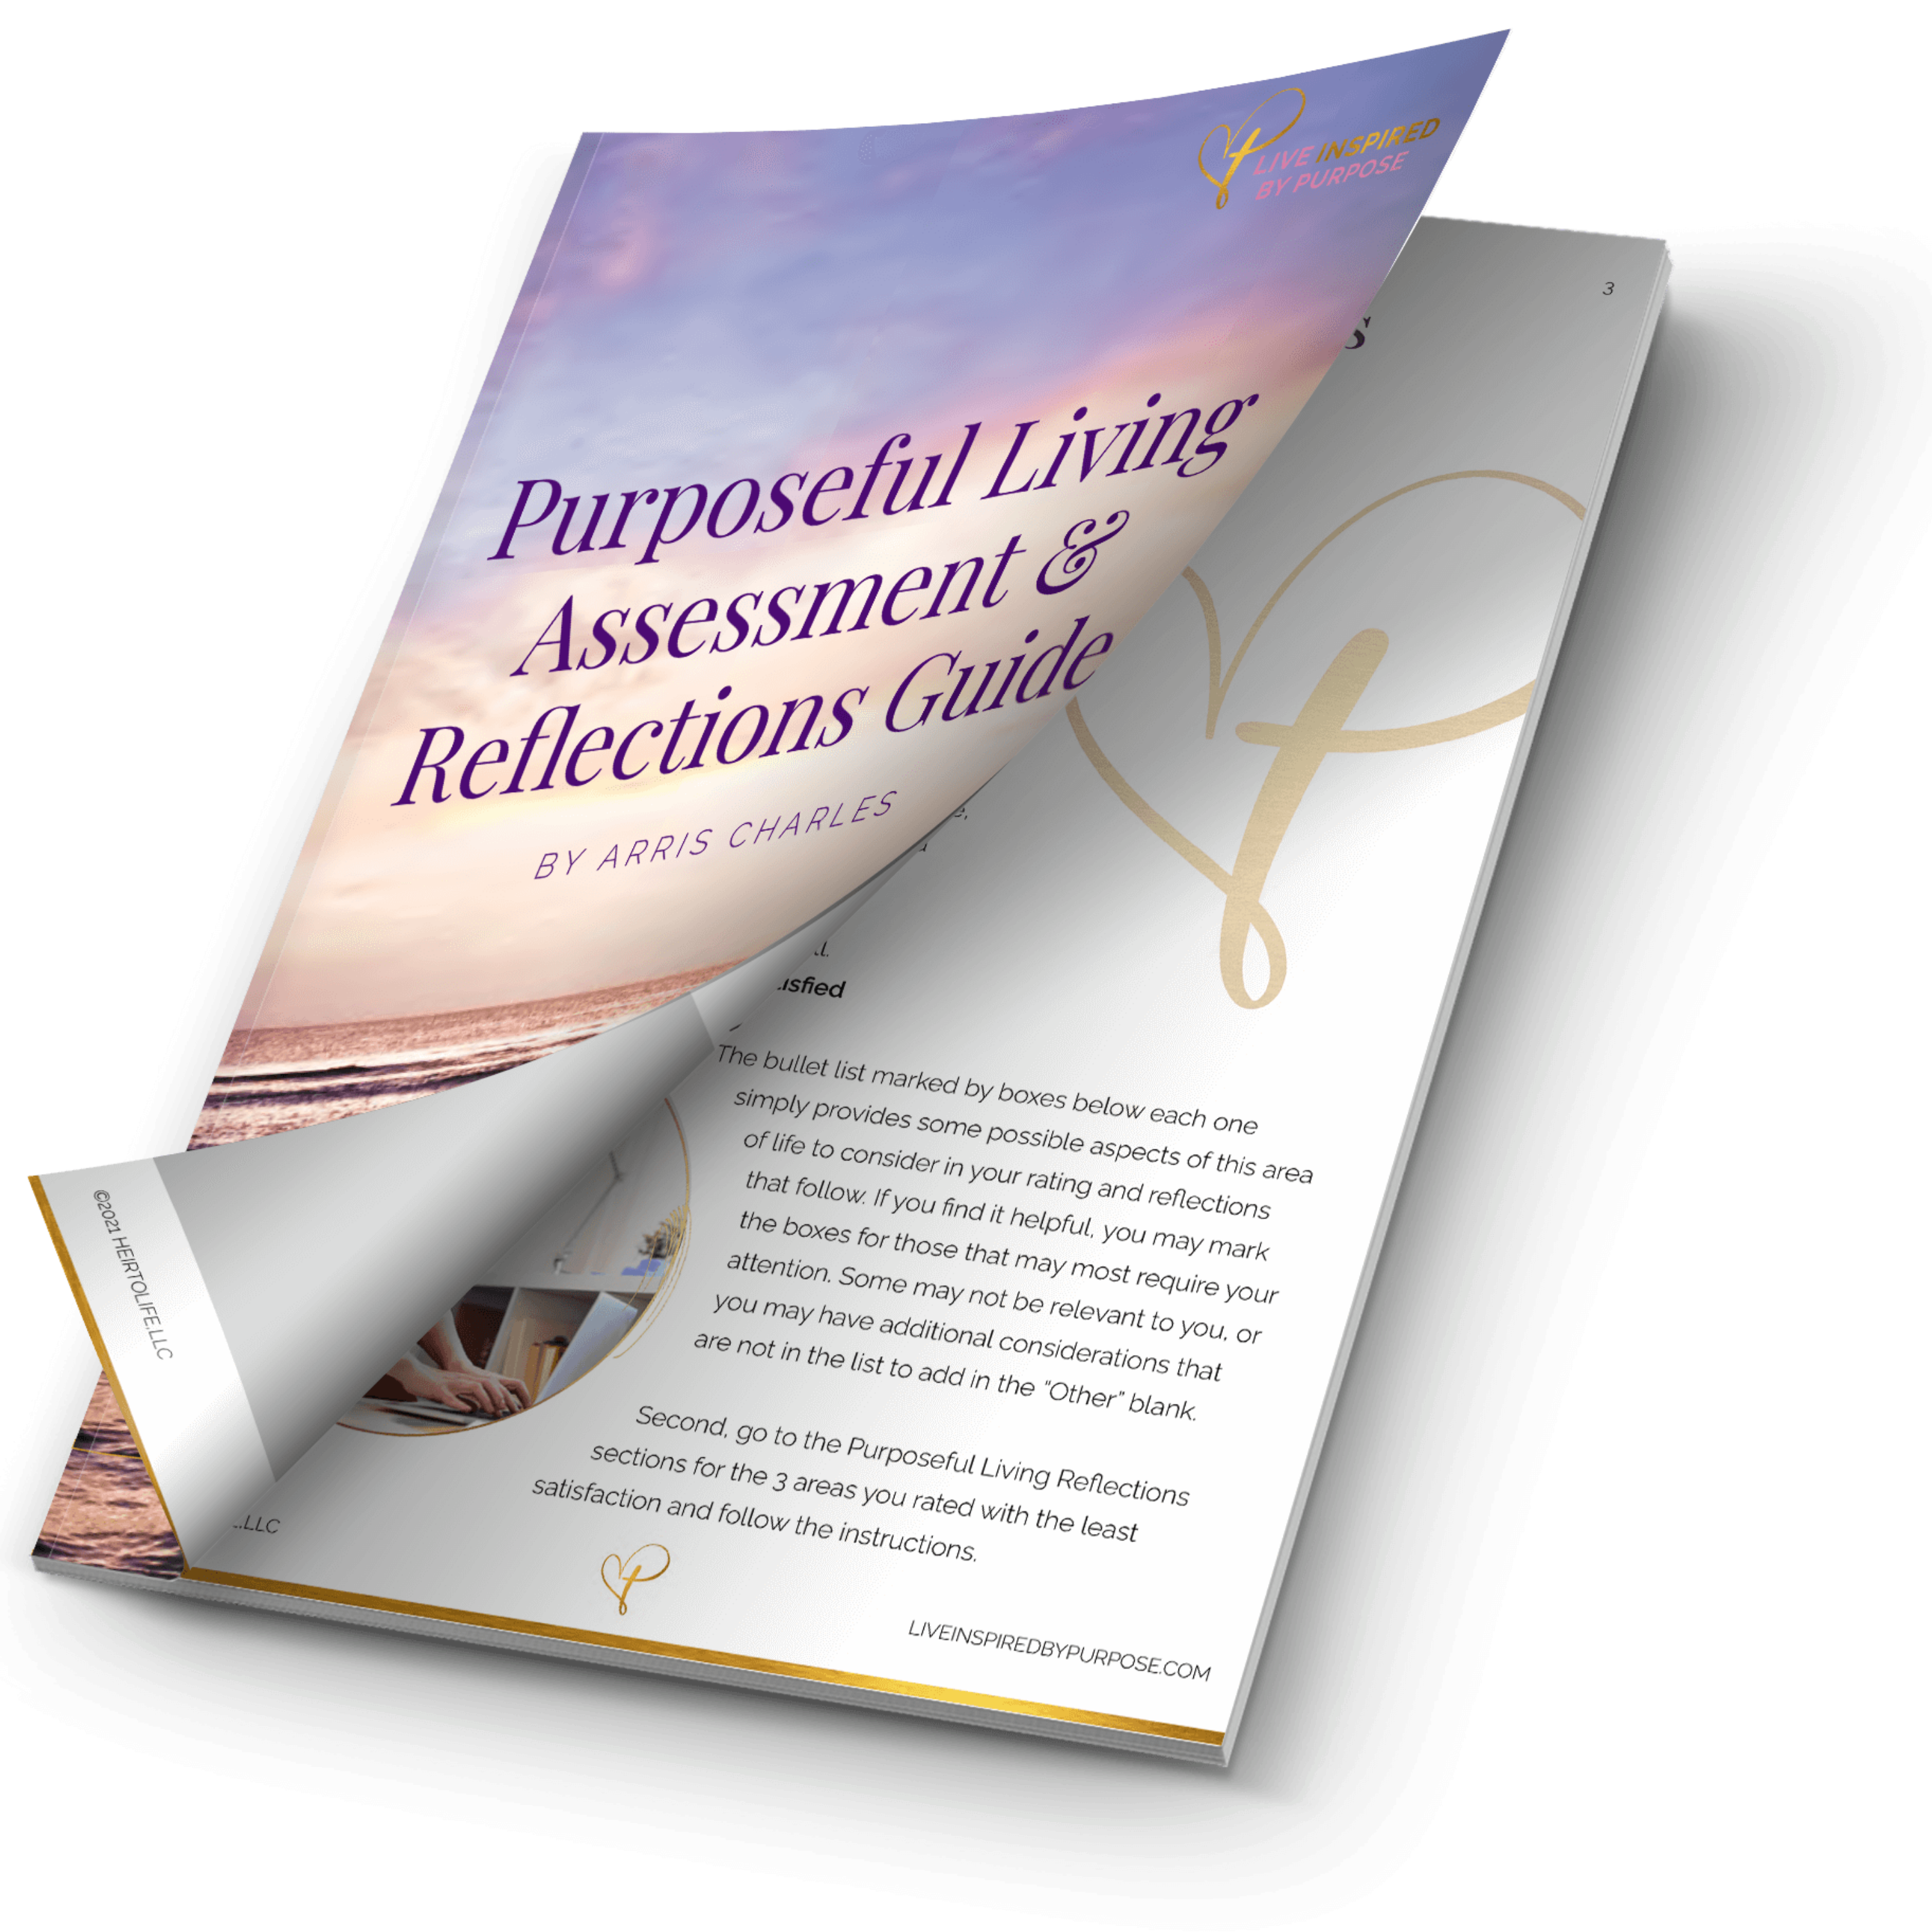 Purposeful Living Assessment and Reflections Guide